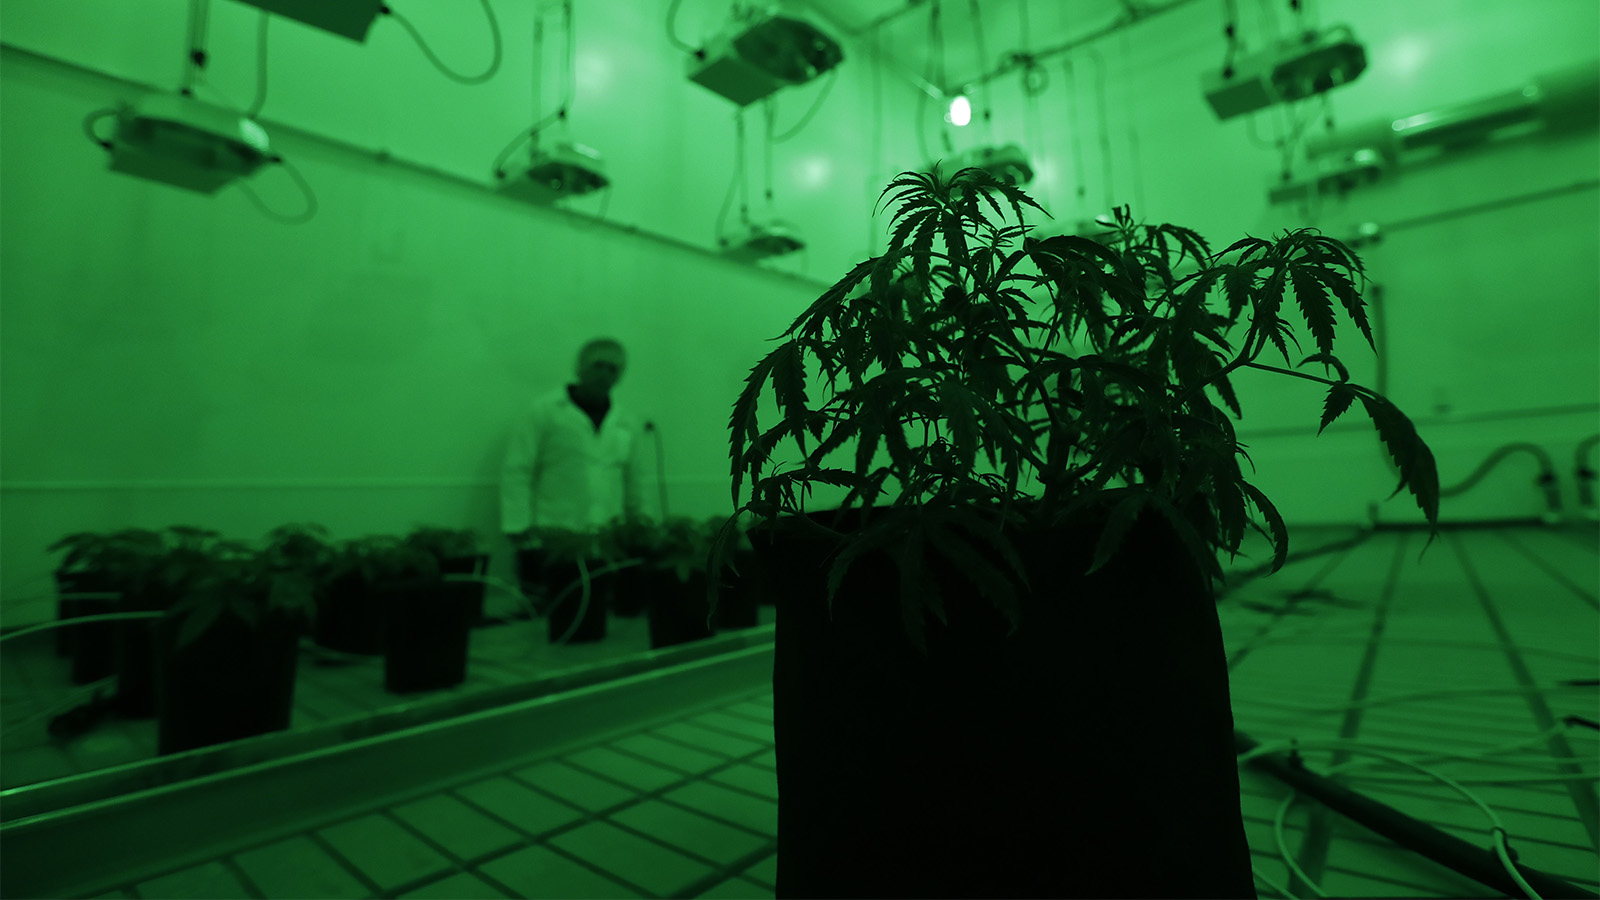 Marijuana plants grow under green lights to simulate night in a vegetation room at Compassionate Cultivation, a licensed medical cannabis cultivator and dispensary, on Dec. 14, 2017, in Manchaca, Texas. (AP Photo/Eric Gay)